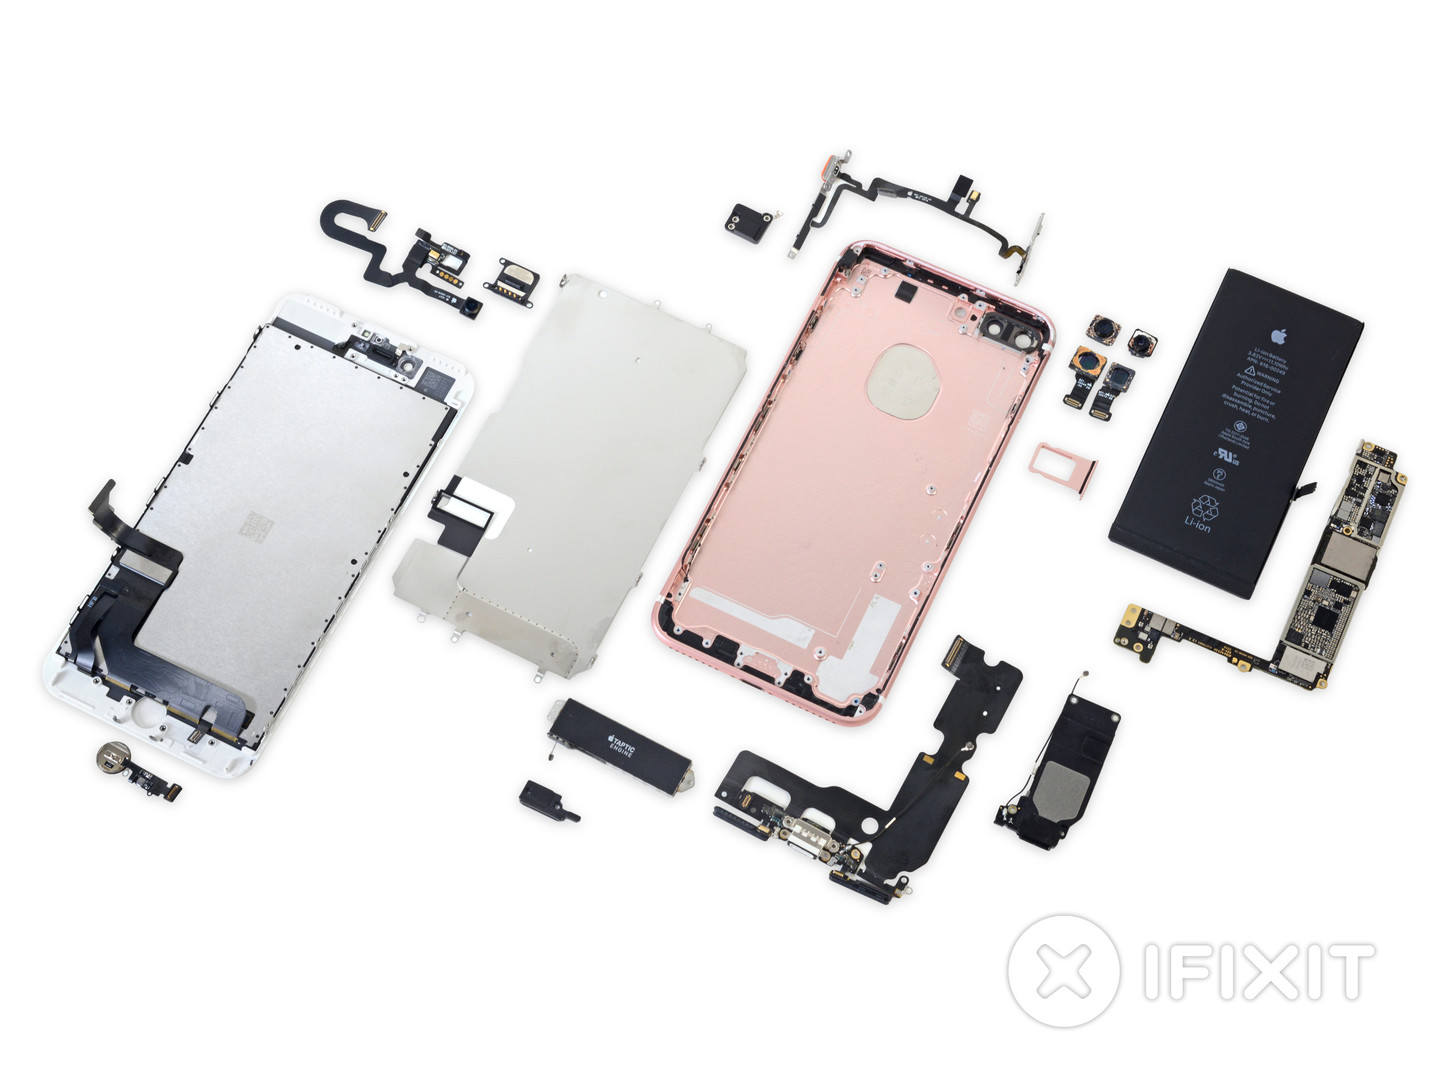 What's Inside the iPhone 7? iFixit's Teardown Has the Answers